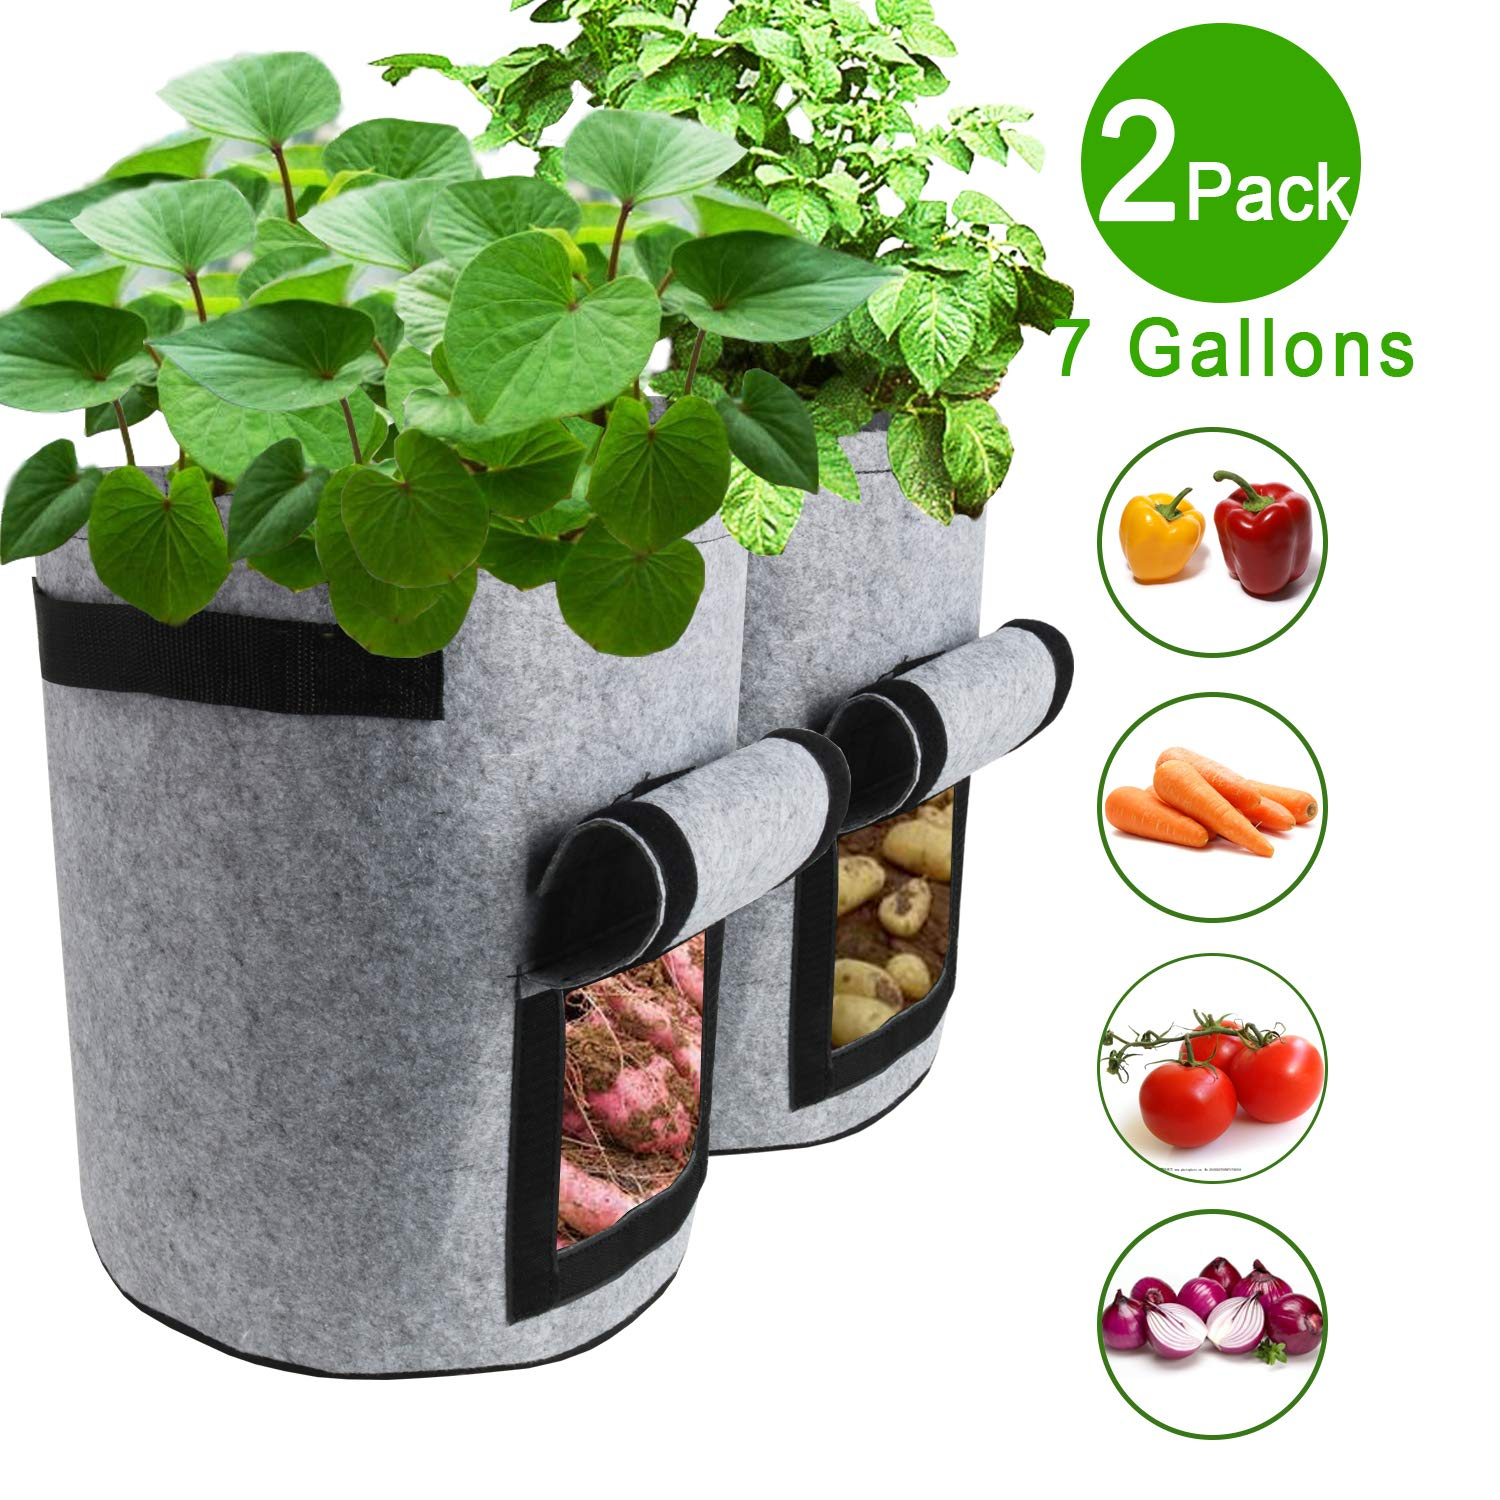 TQQFUN 2 Pack 7 Gallon Smart Potato Bags Velcro Window Vegetable Bags, Double Layer Premium Breathable Nonwoven Cloth for Potato Aeration Fabric Pots with Handles Gray